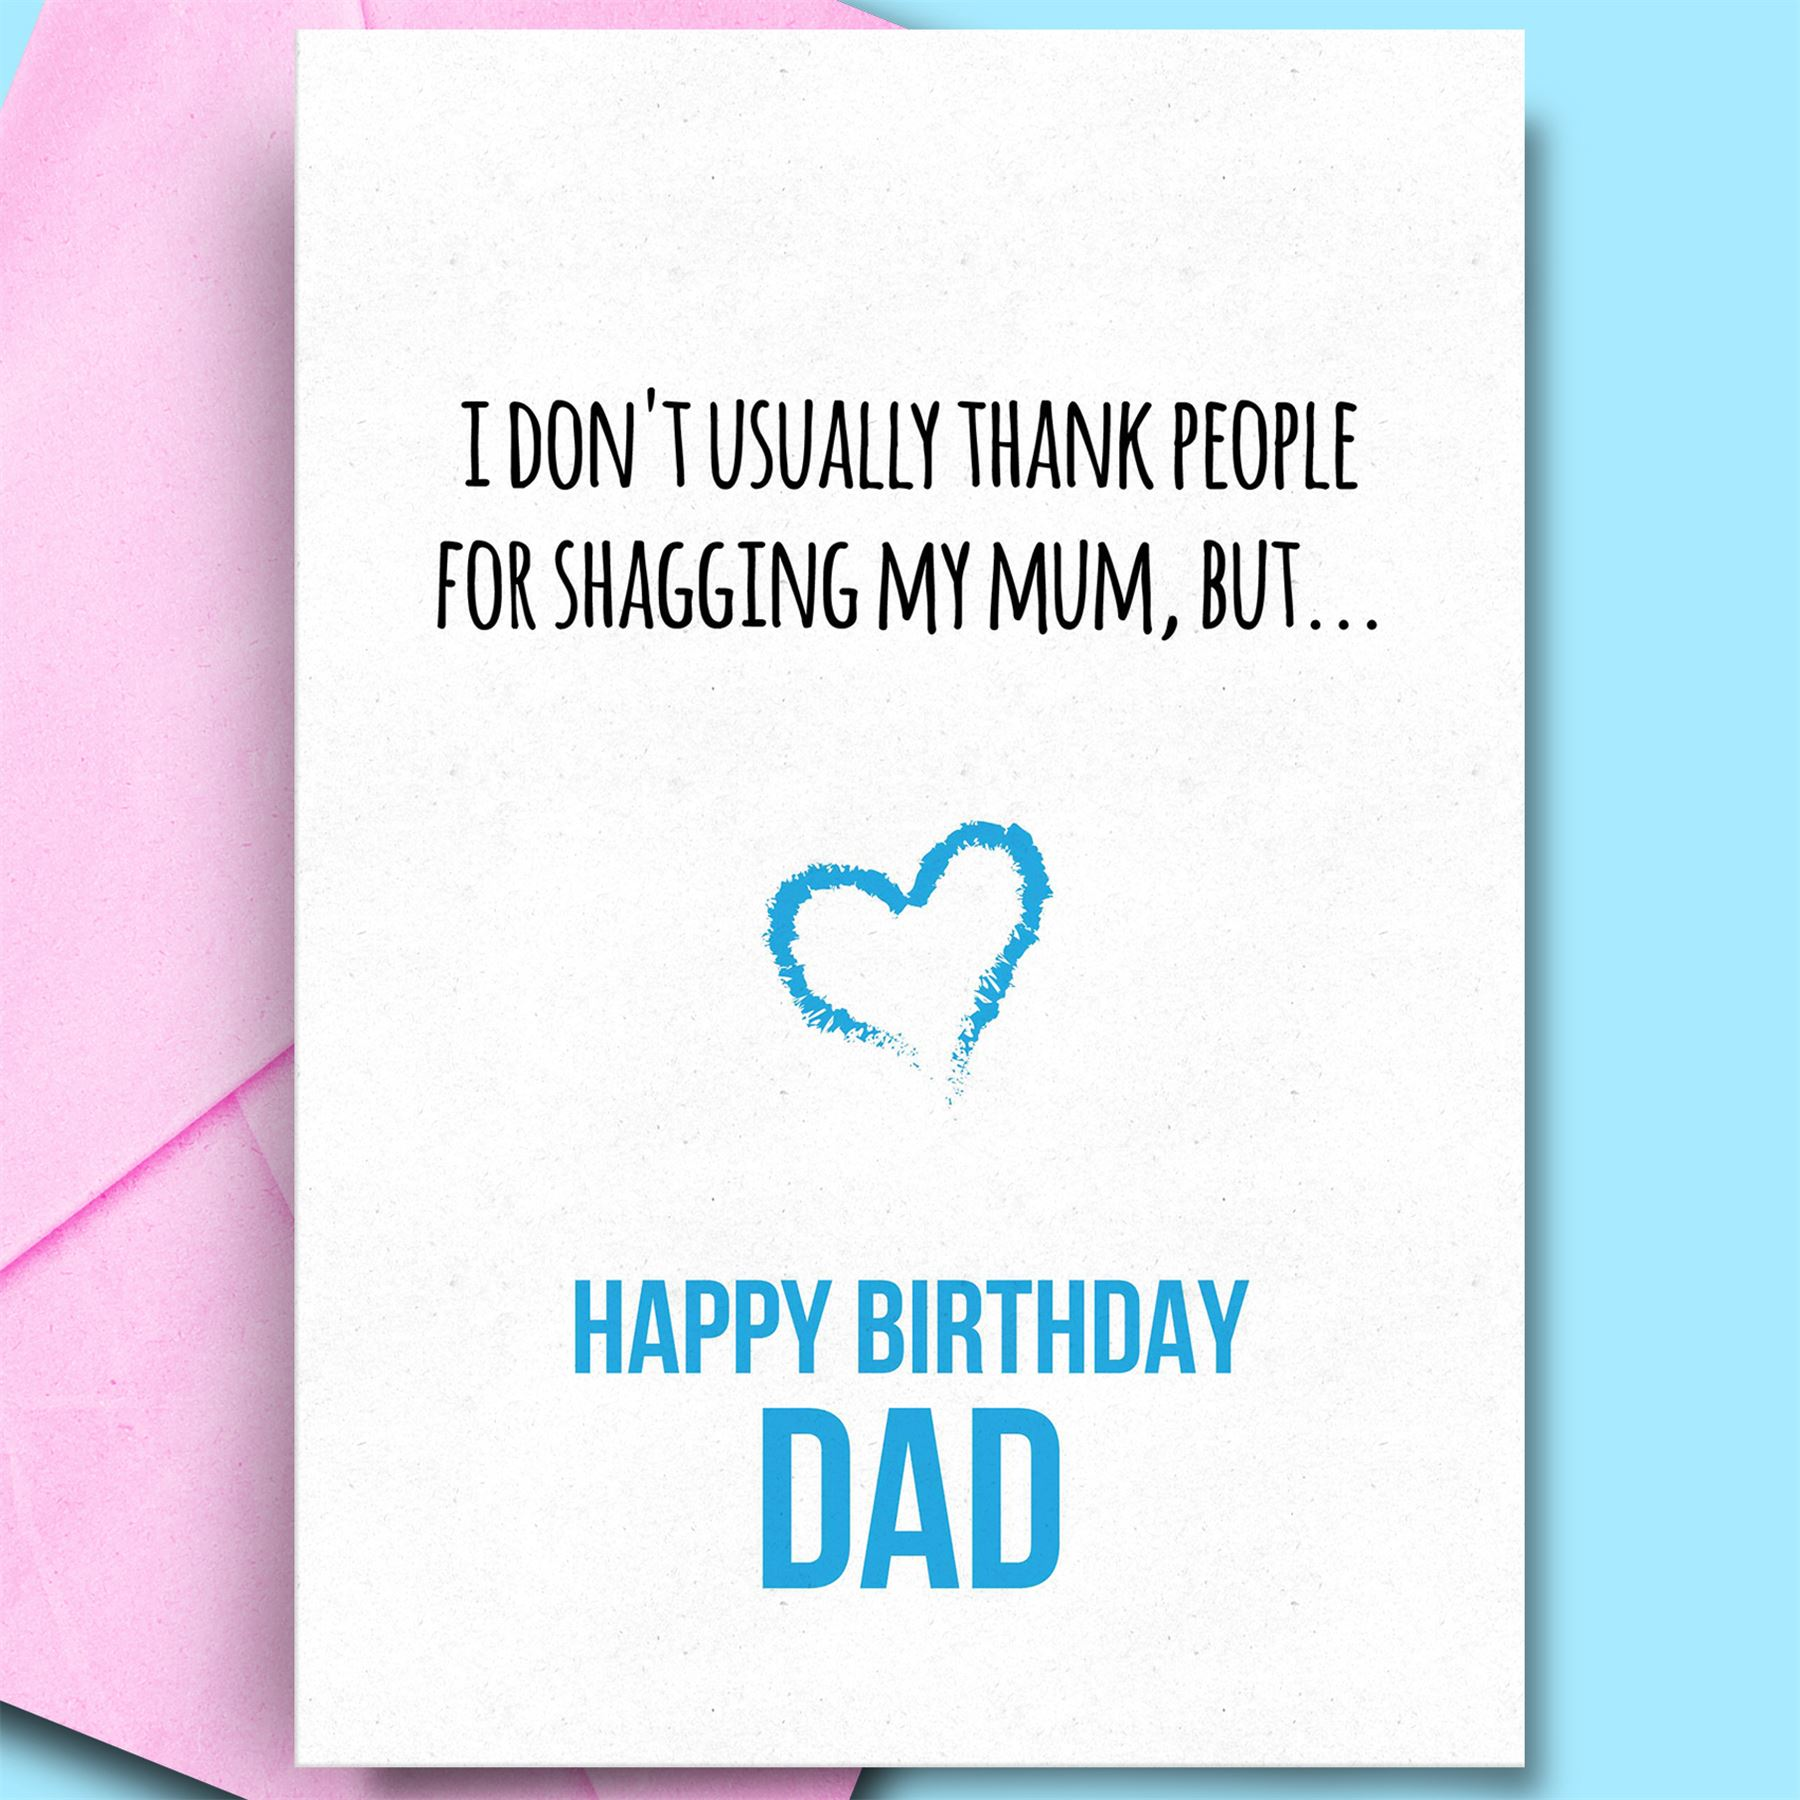 Details About Funny Birthday Cards For Dad From Daughter Son Rude Humour Happy Bday